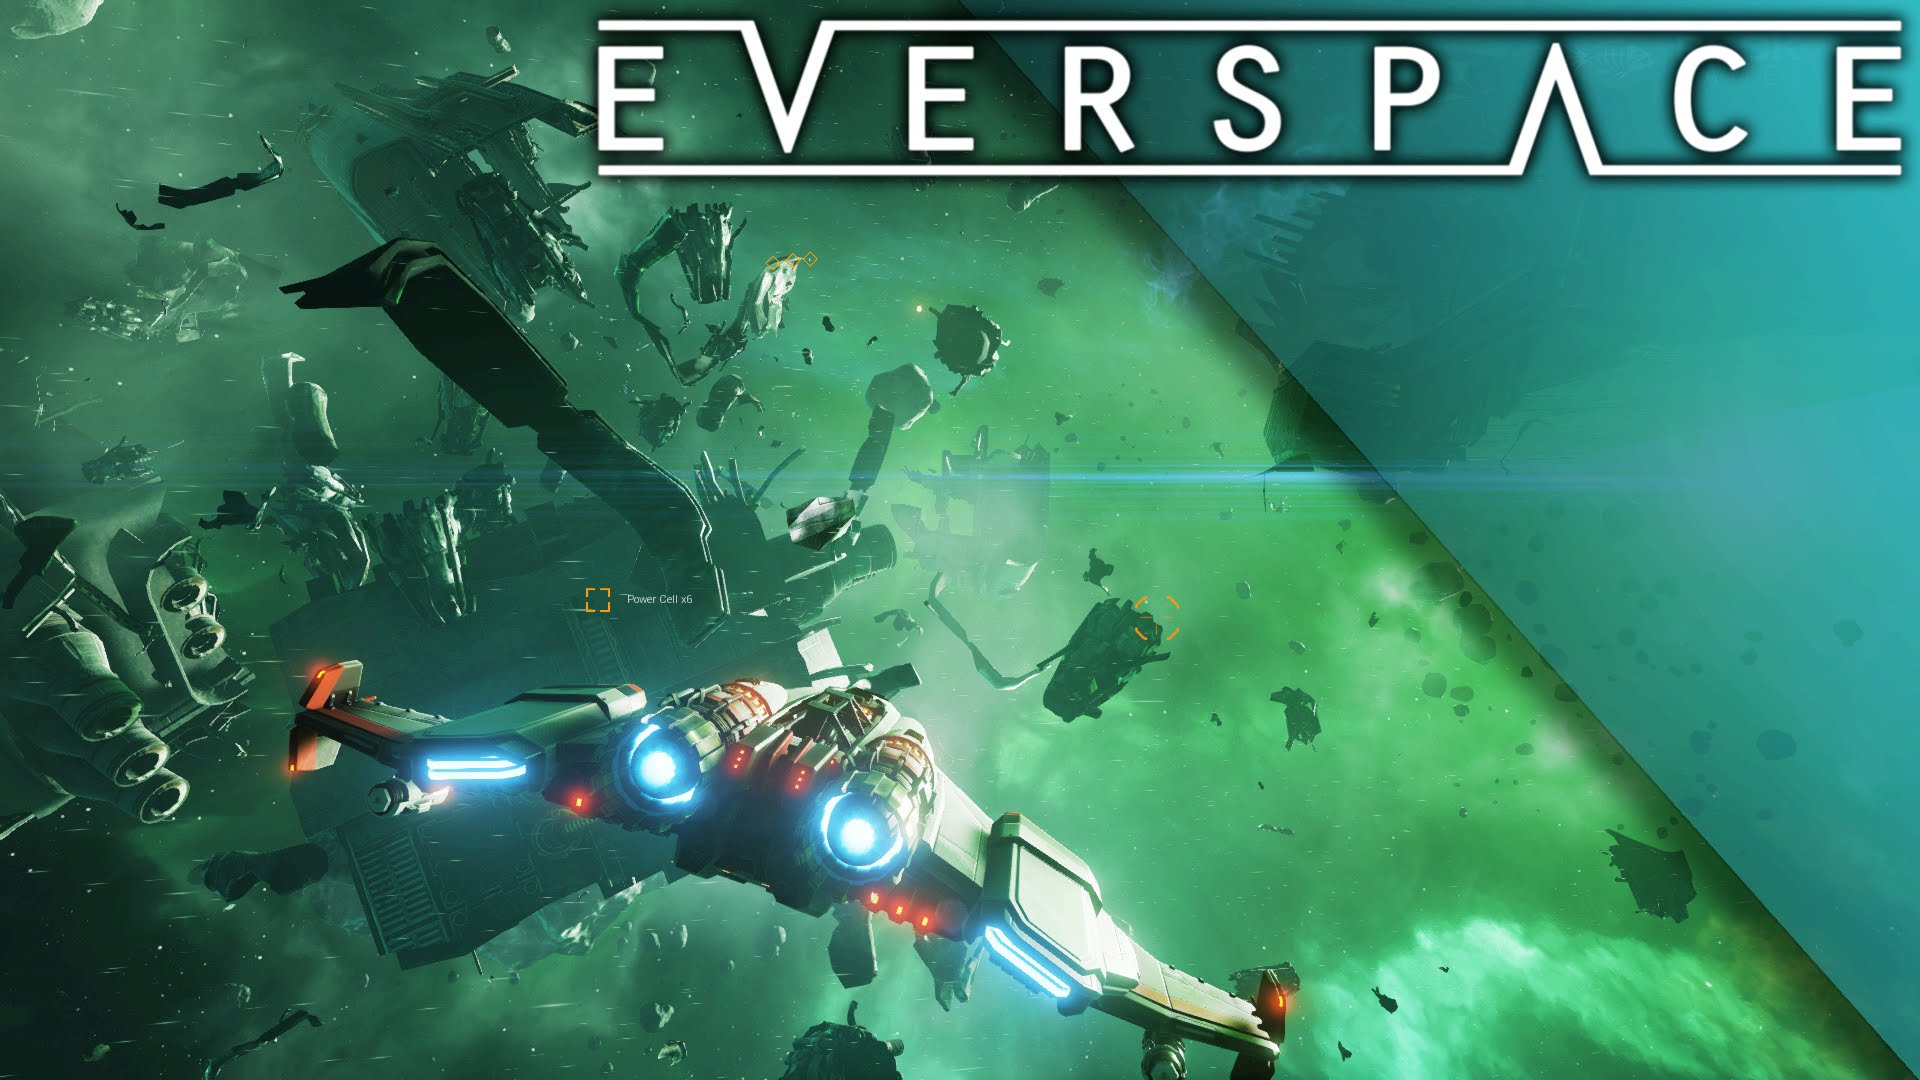 Everspace full release due soon, early access available screenshot